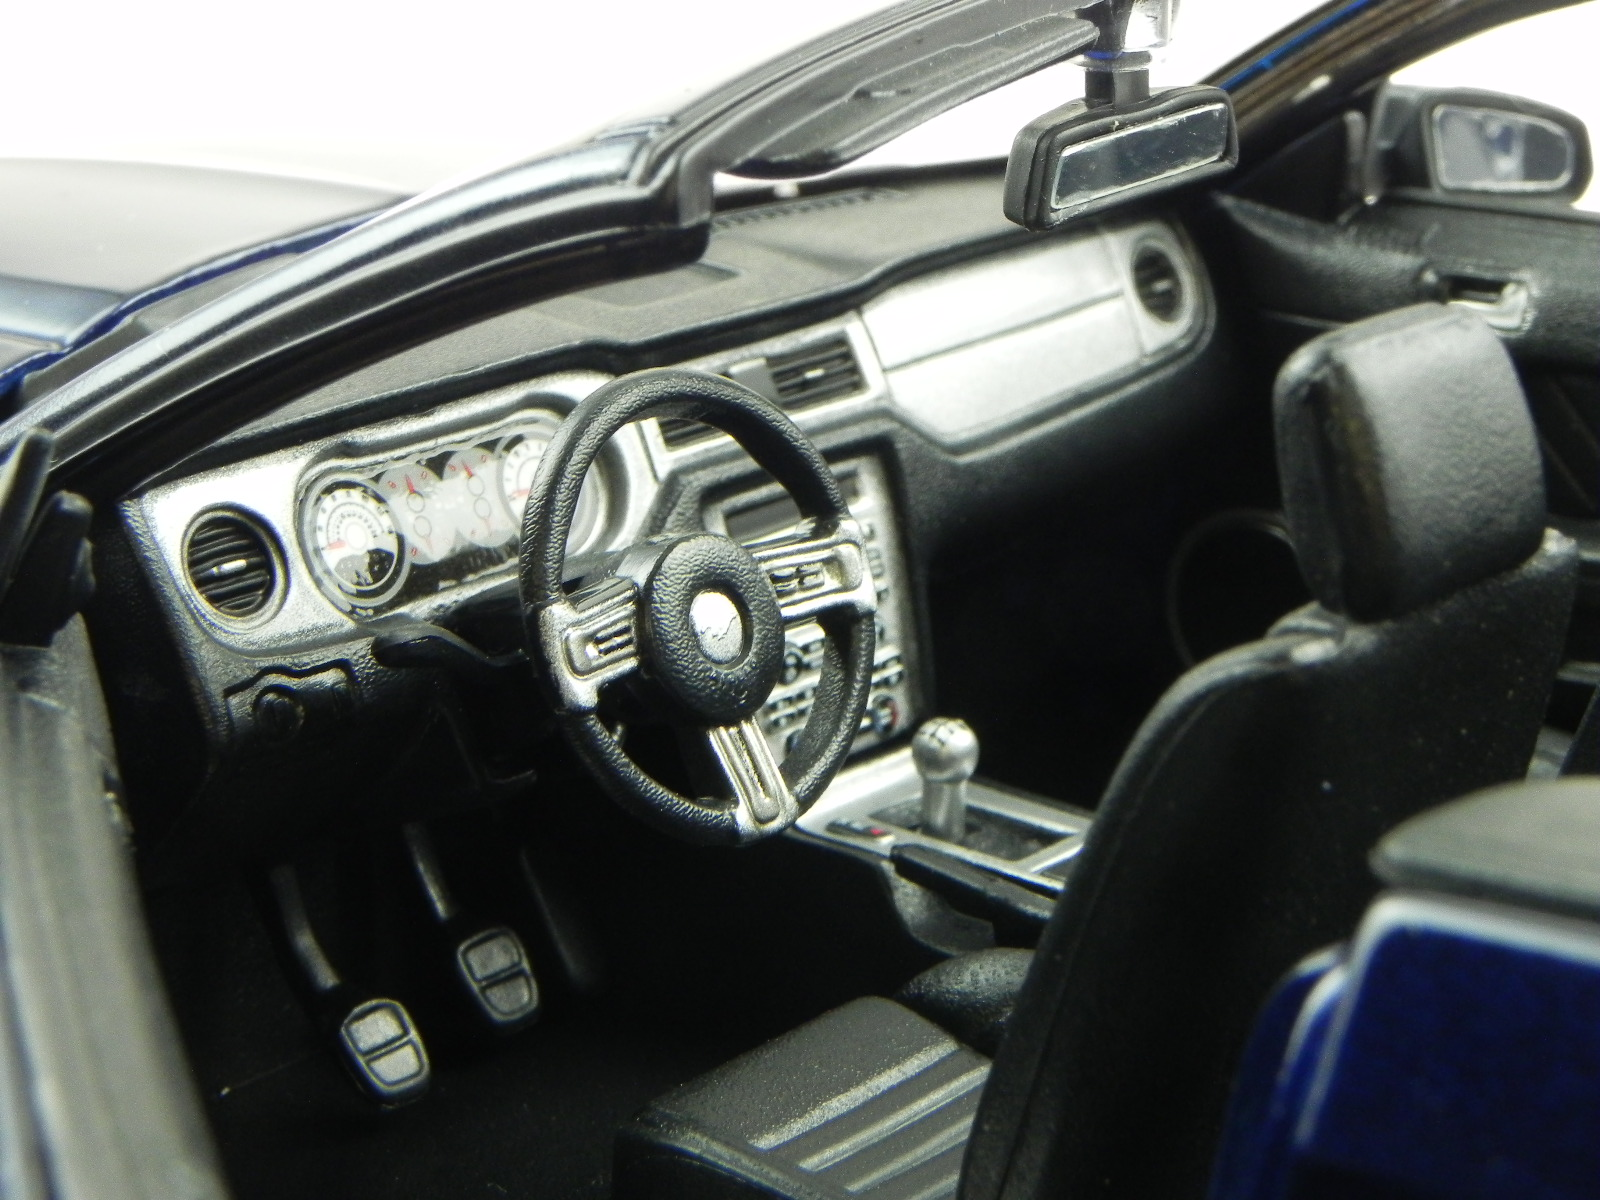 Ford Mustang Mustang Mustang GT Cabrio 2010 bleu véhicule miniature 31158 Maisto 1 18 91f959